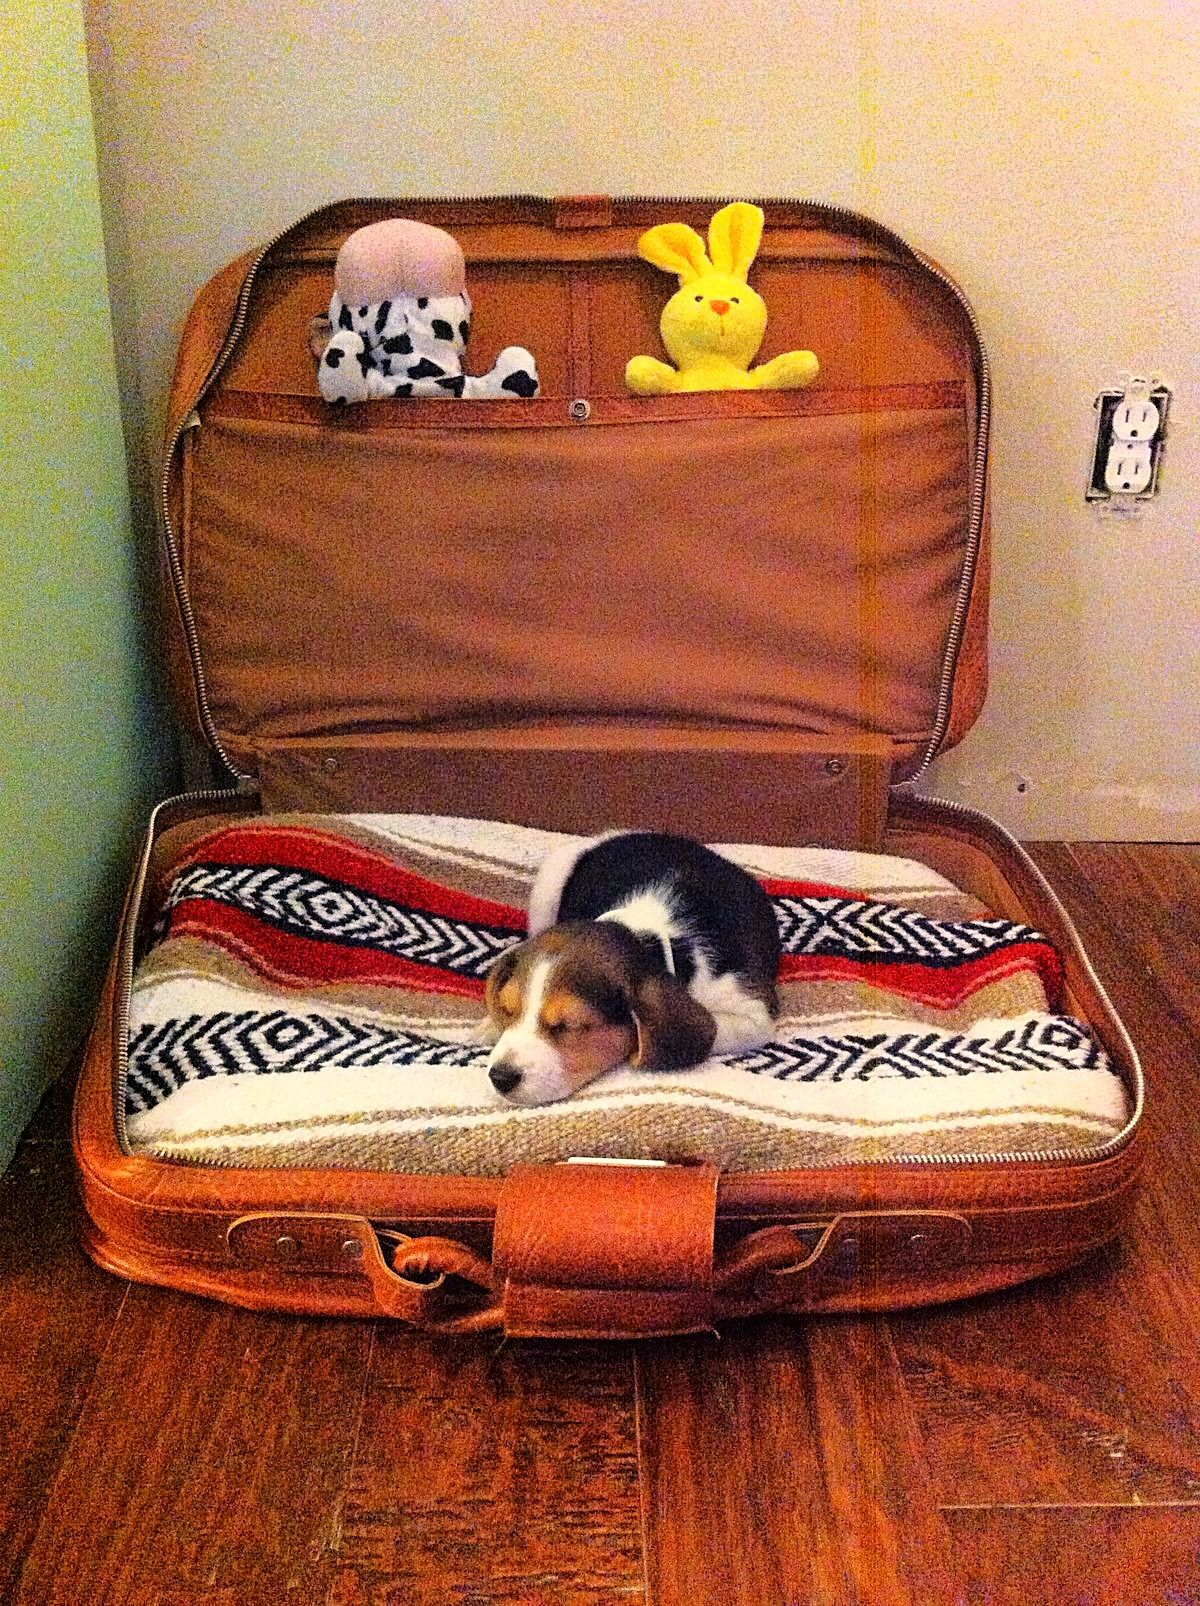 Travel Dog Bed >> Travel Dog Bed Put All Your Dogs Toys Food Dishes Etc In